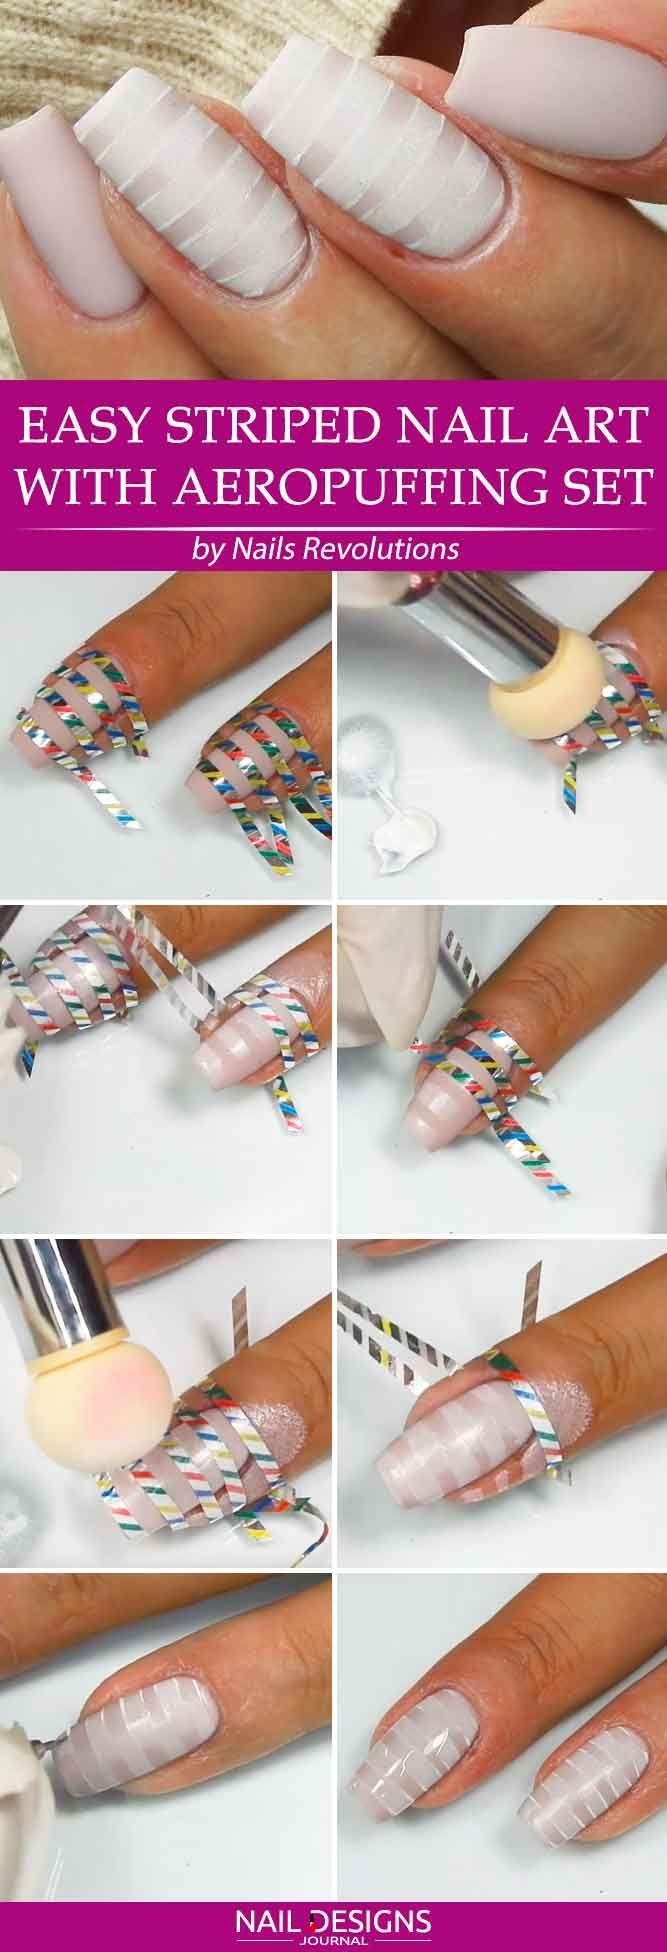 Super easy aeropuffing nail art tutorials to do at home pinterest